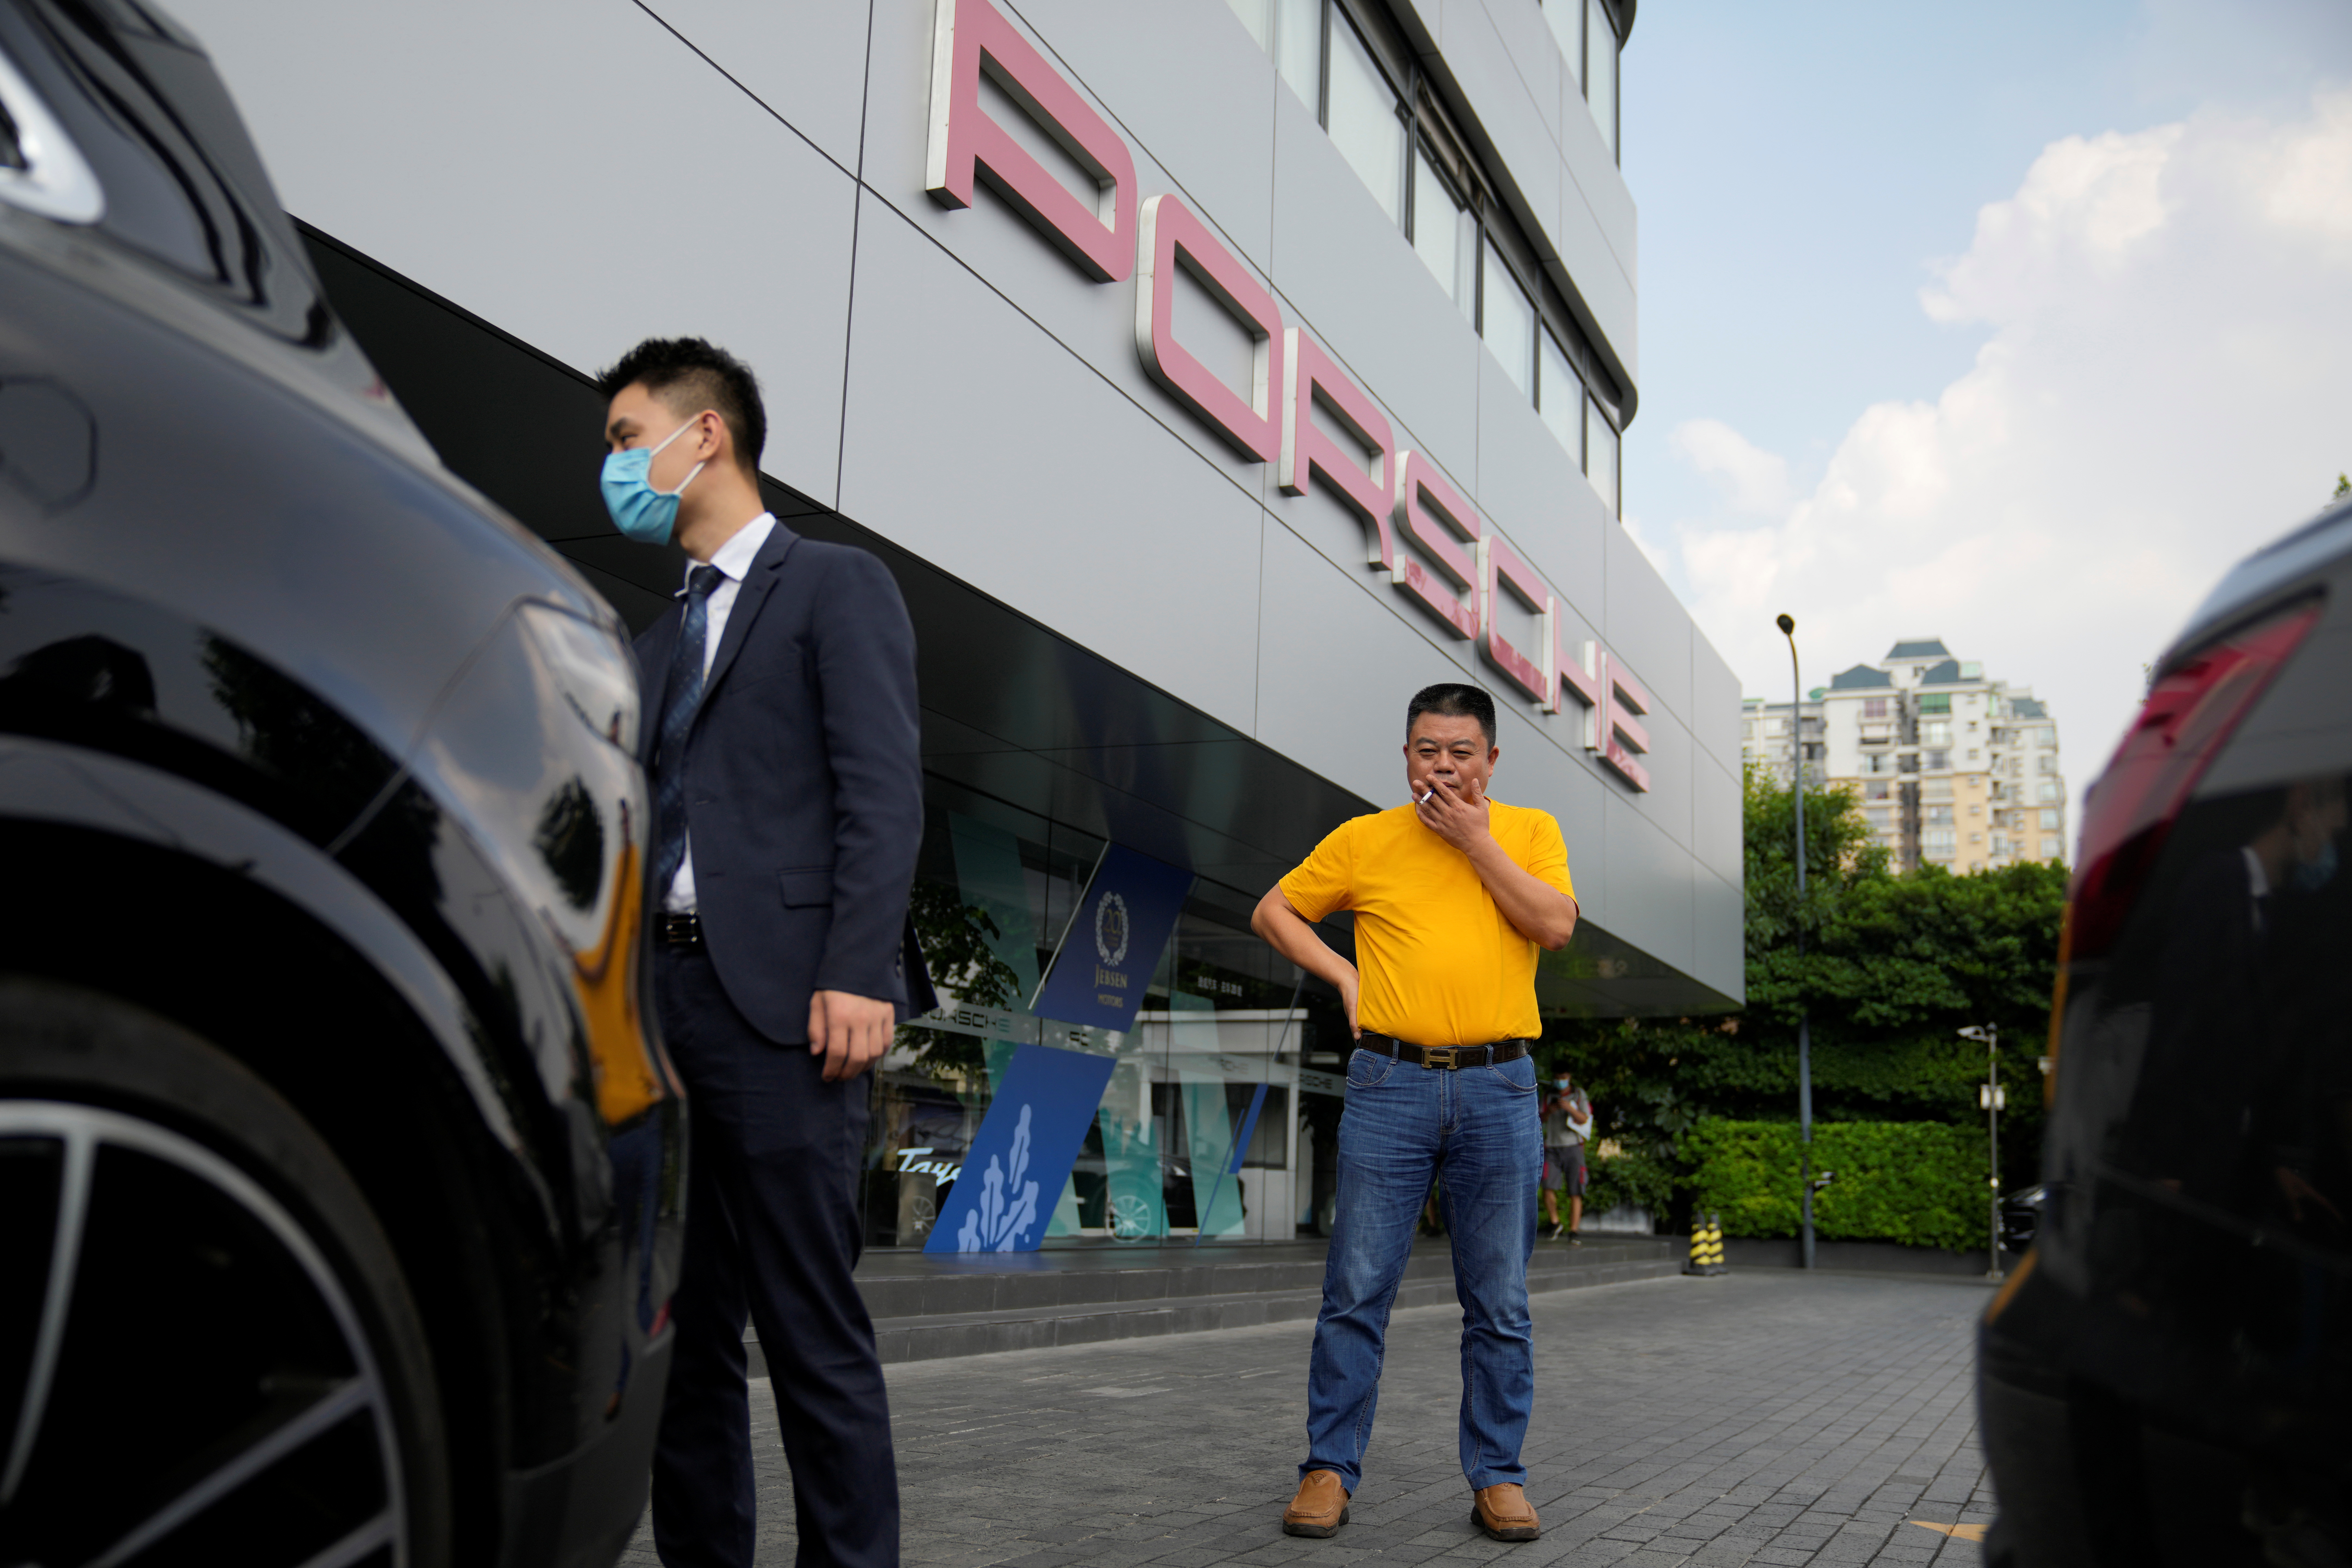 Guo Hui, whose cleaning business is owed money by China Evergrande Group, smokes a cigarette as he looks at his Porsche Cayenne he is selling to pay his debts, at a car dealership in Guangzhou, Guangdong province, China September 27, 2021. Picture taken September 27, 2021. REUTERS/Aly Song